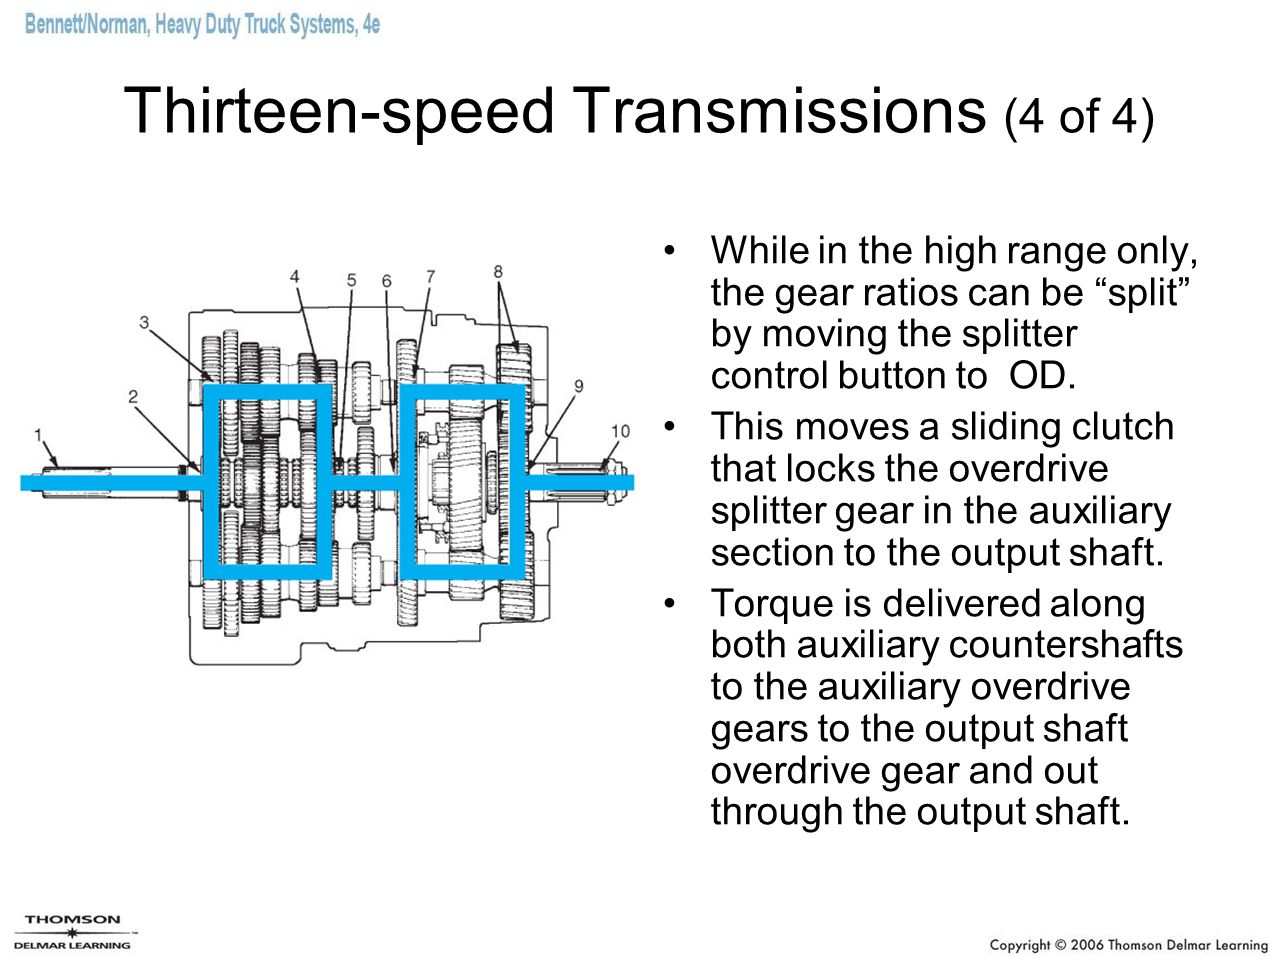 Thirteen-speed Transmissions (4 of 4)